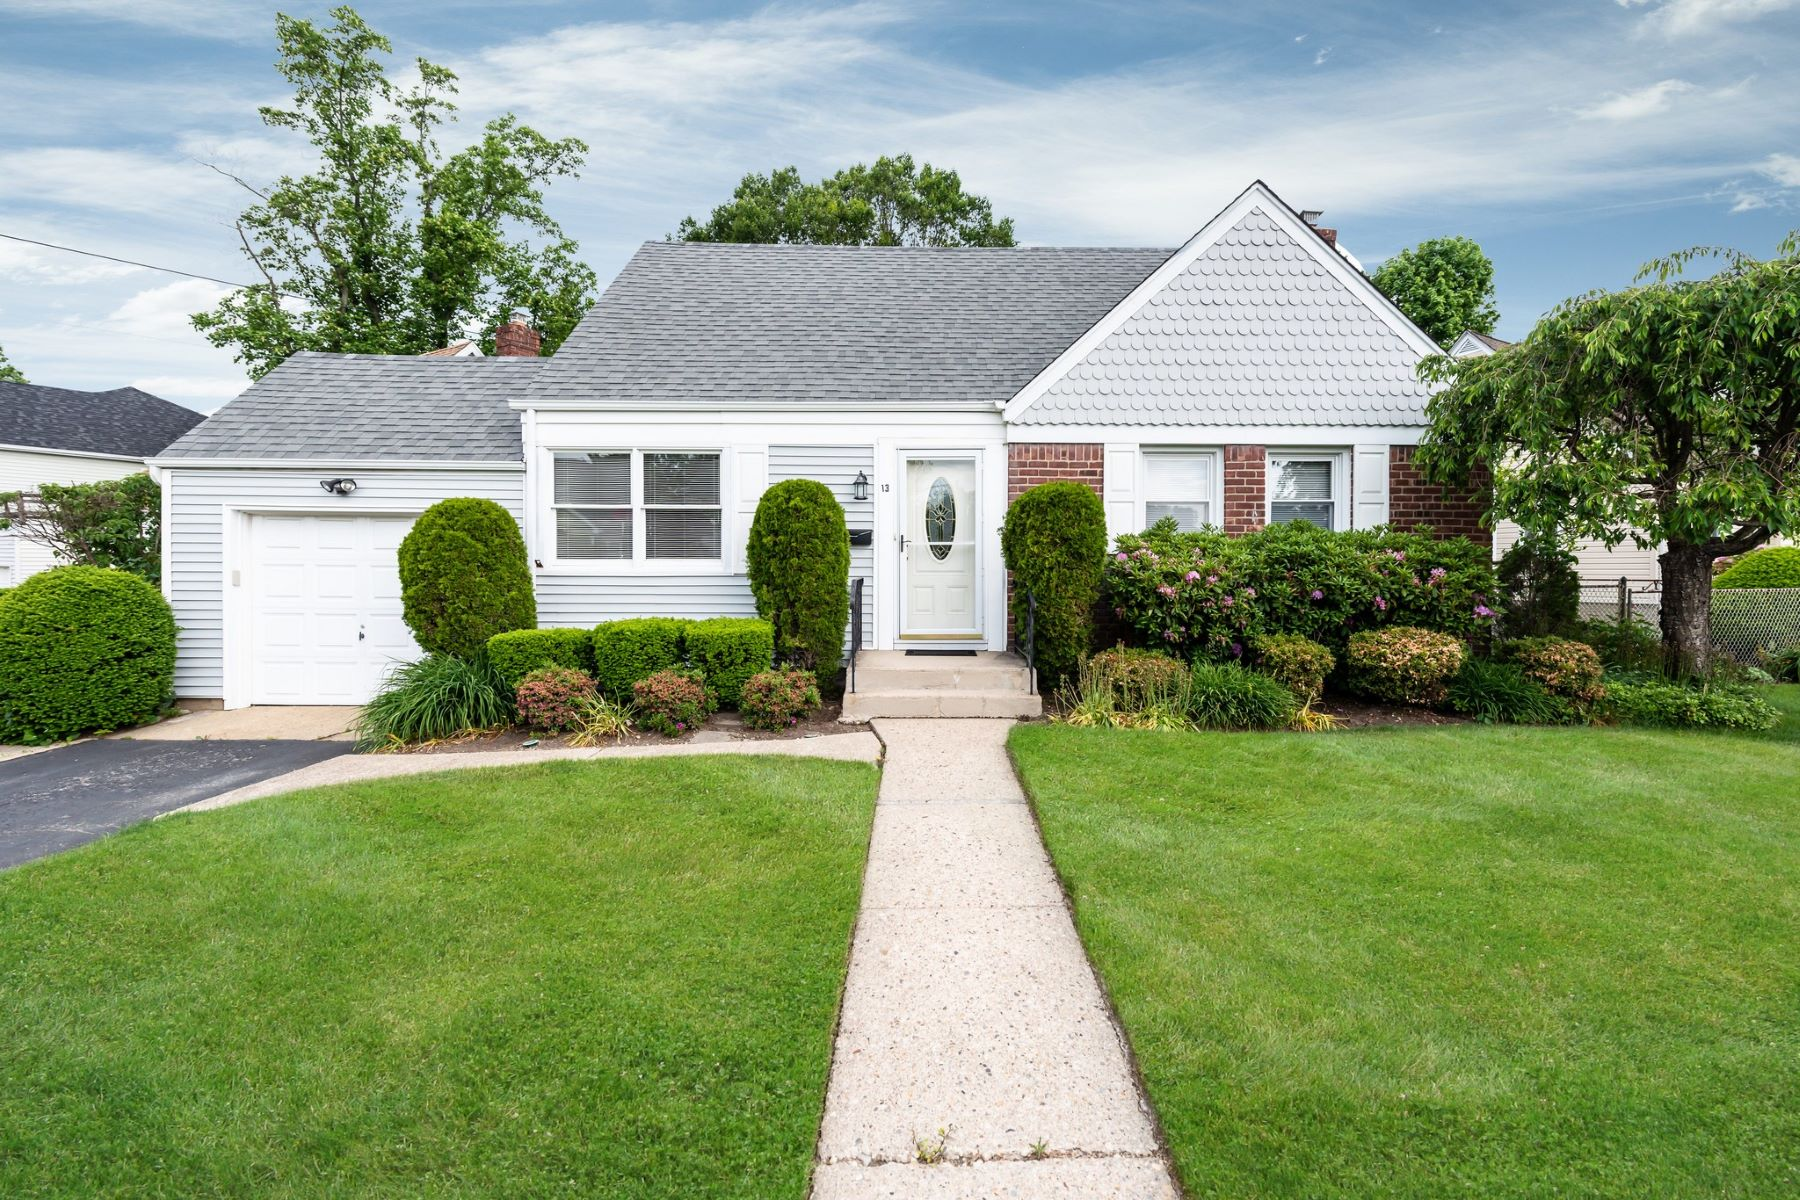 Single Family Homes for Active at Syosset 13 Jarvis Avenue Syosset, New York 11791 United States